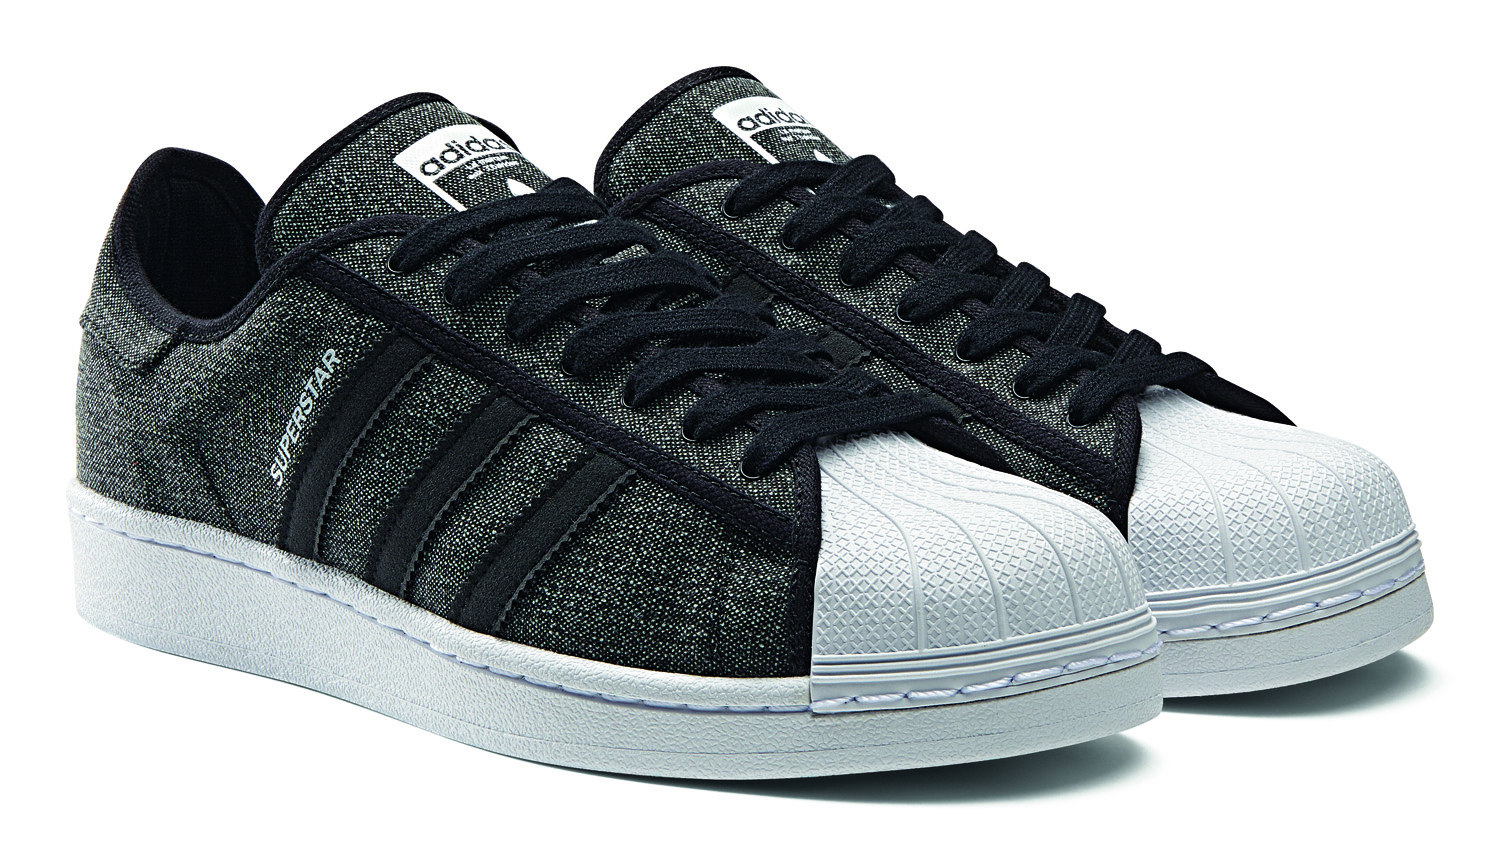 Adidas Originals Superstar Festival Canvas Pack Adidas Superstar Cheap